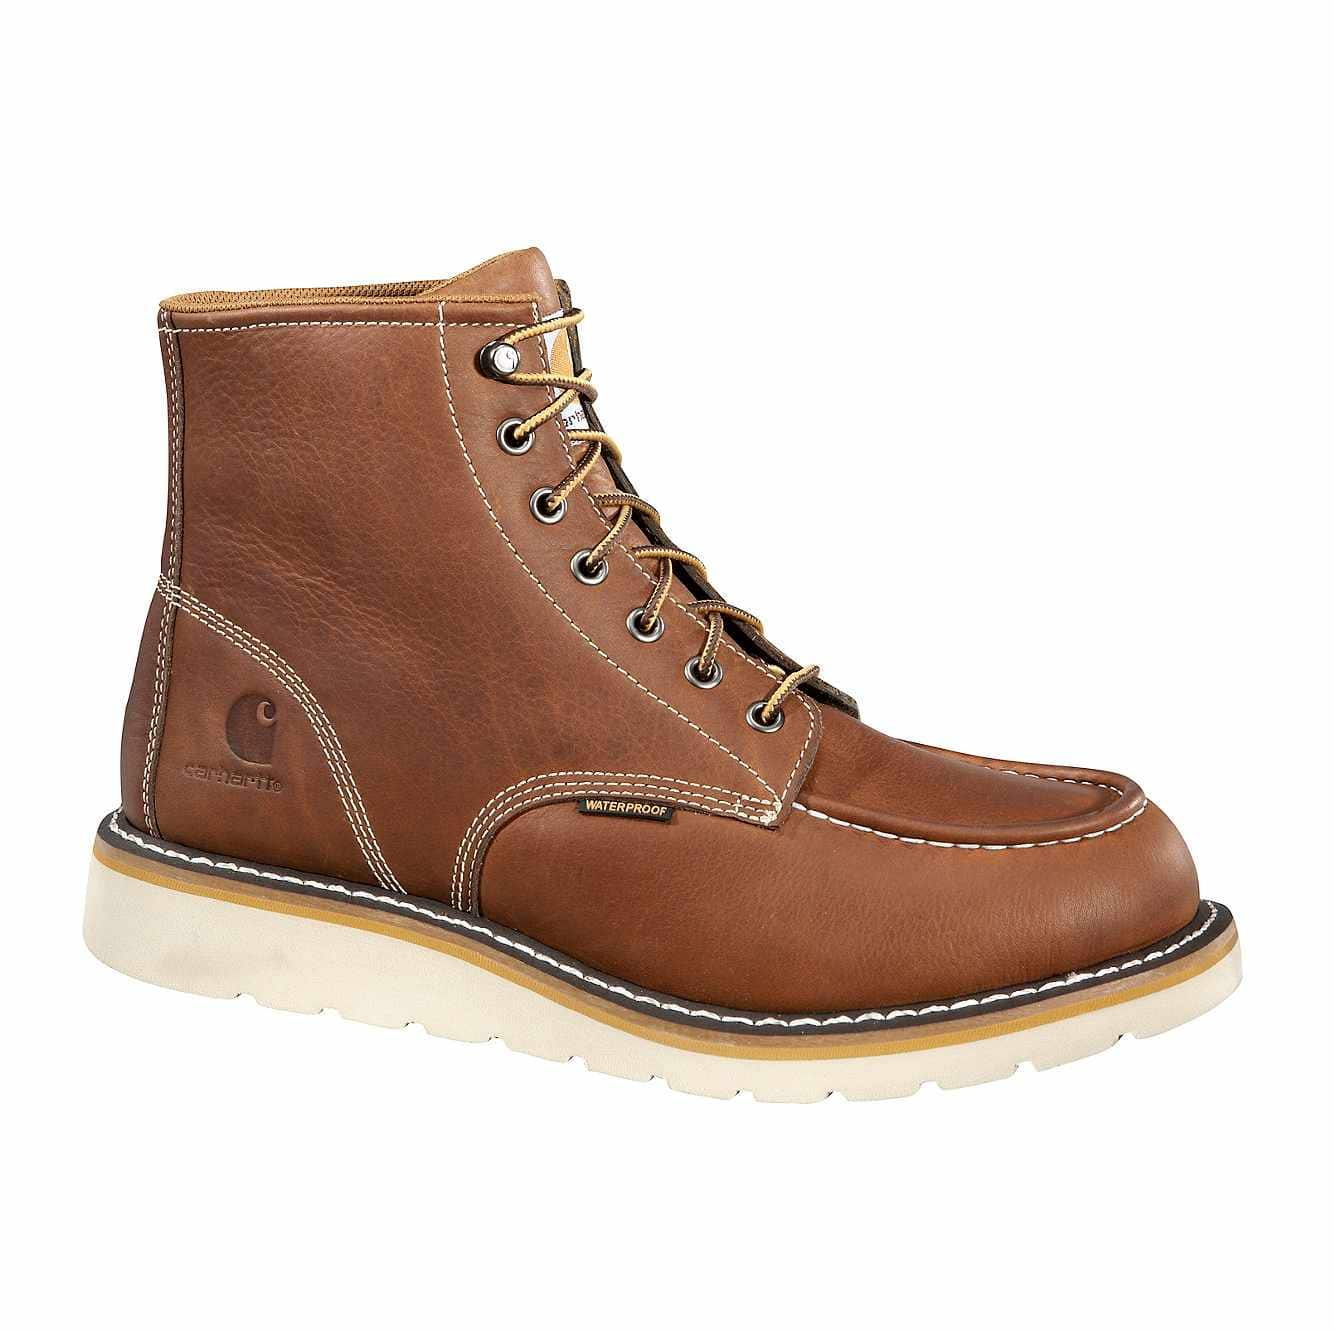 Picture of 6-Inch Steel Toe Wedge Boot in Tan